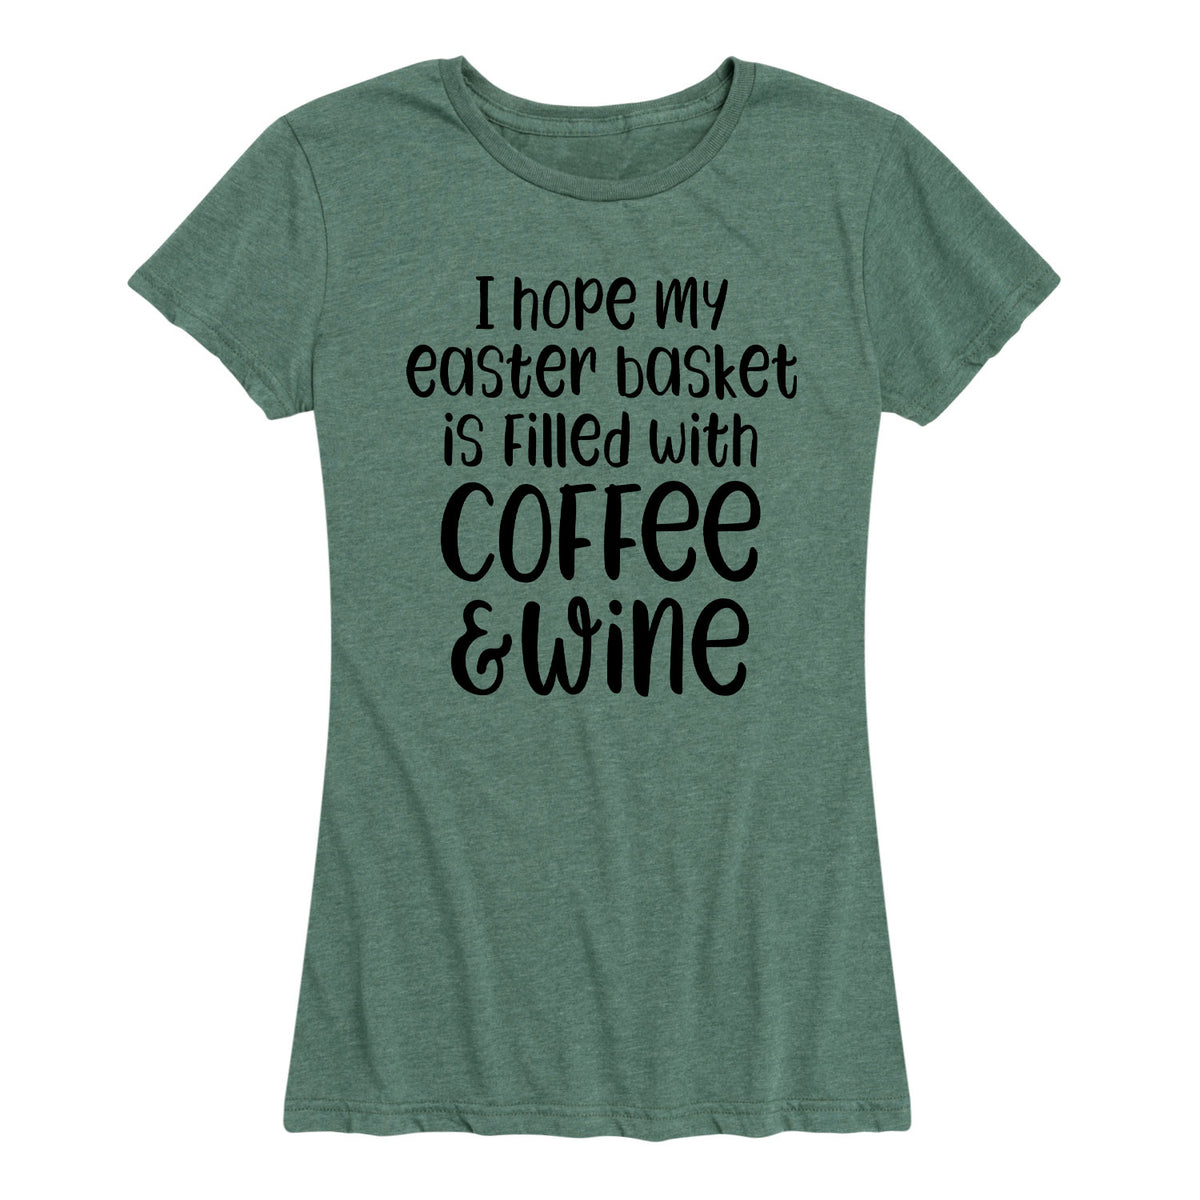 Easter Basket Coffee And Wine - Women's Short Sleeve T-Shirt